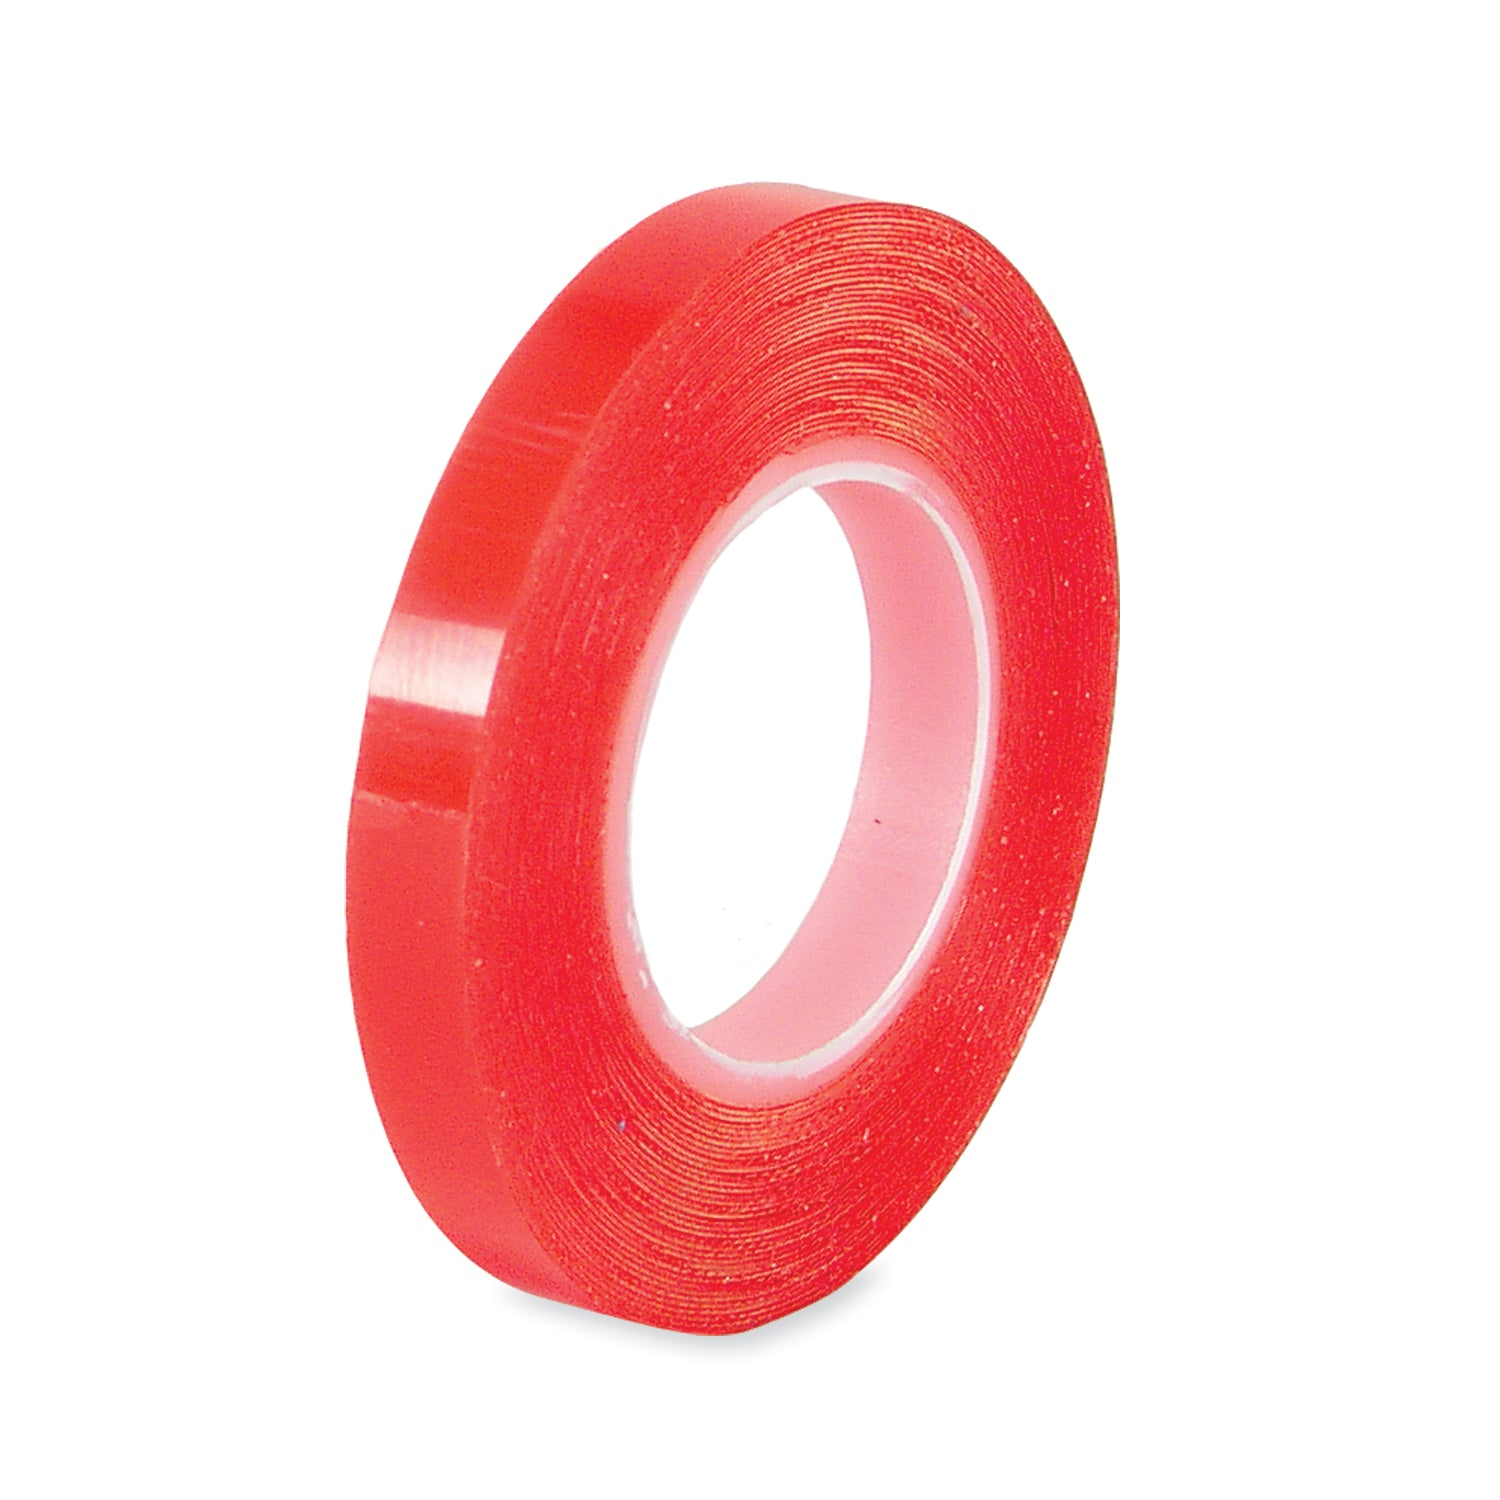 Red liner double stick adhesive tape